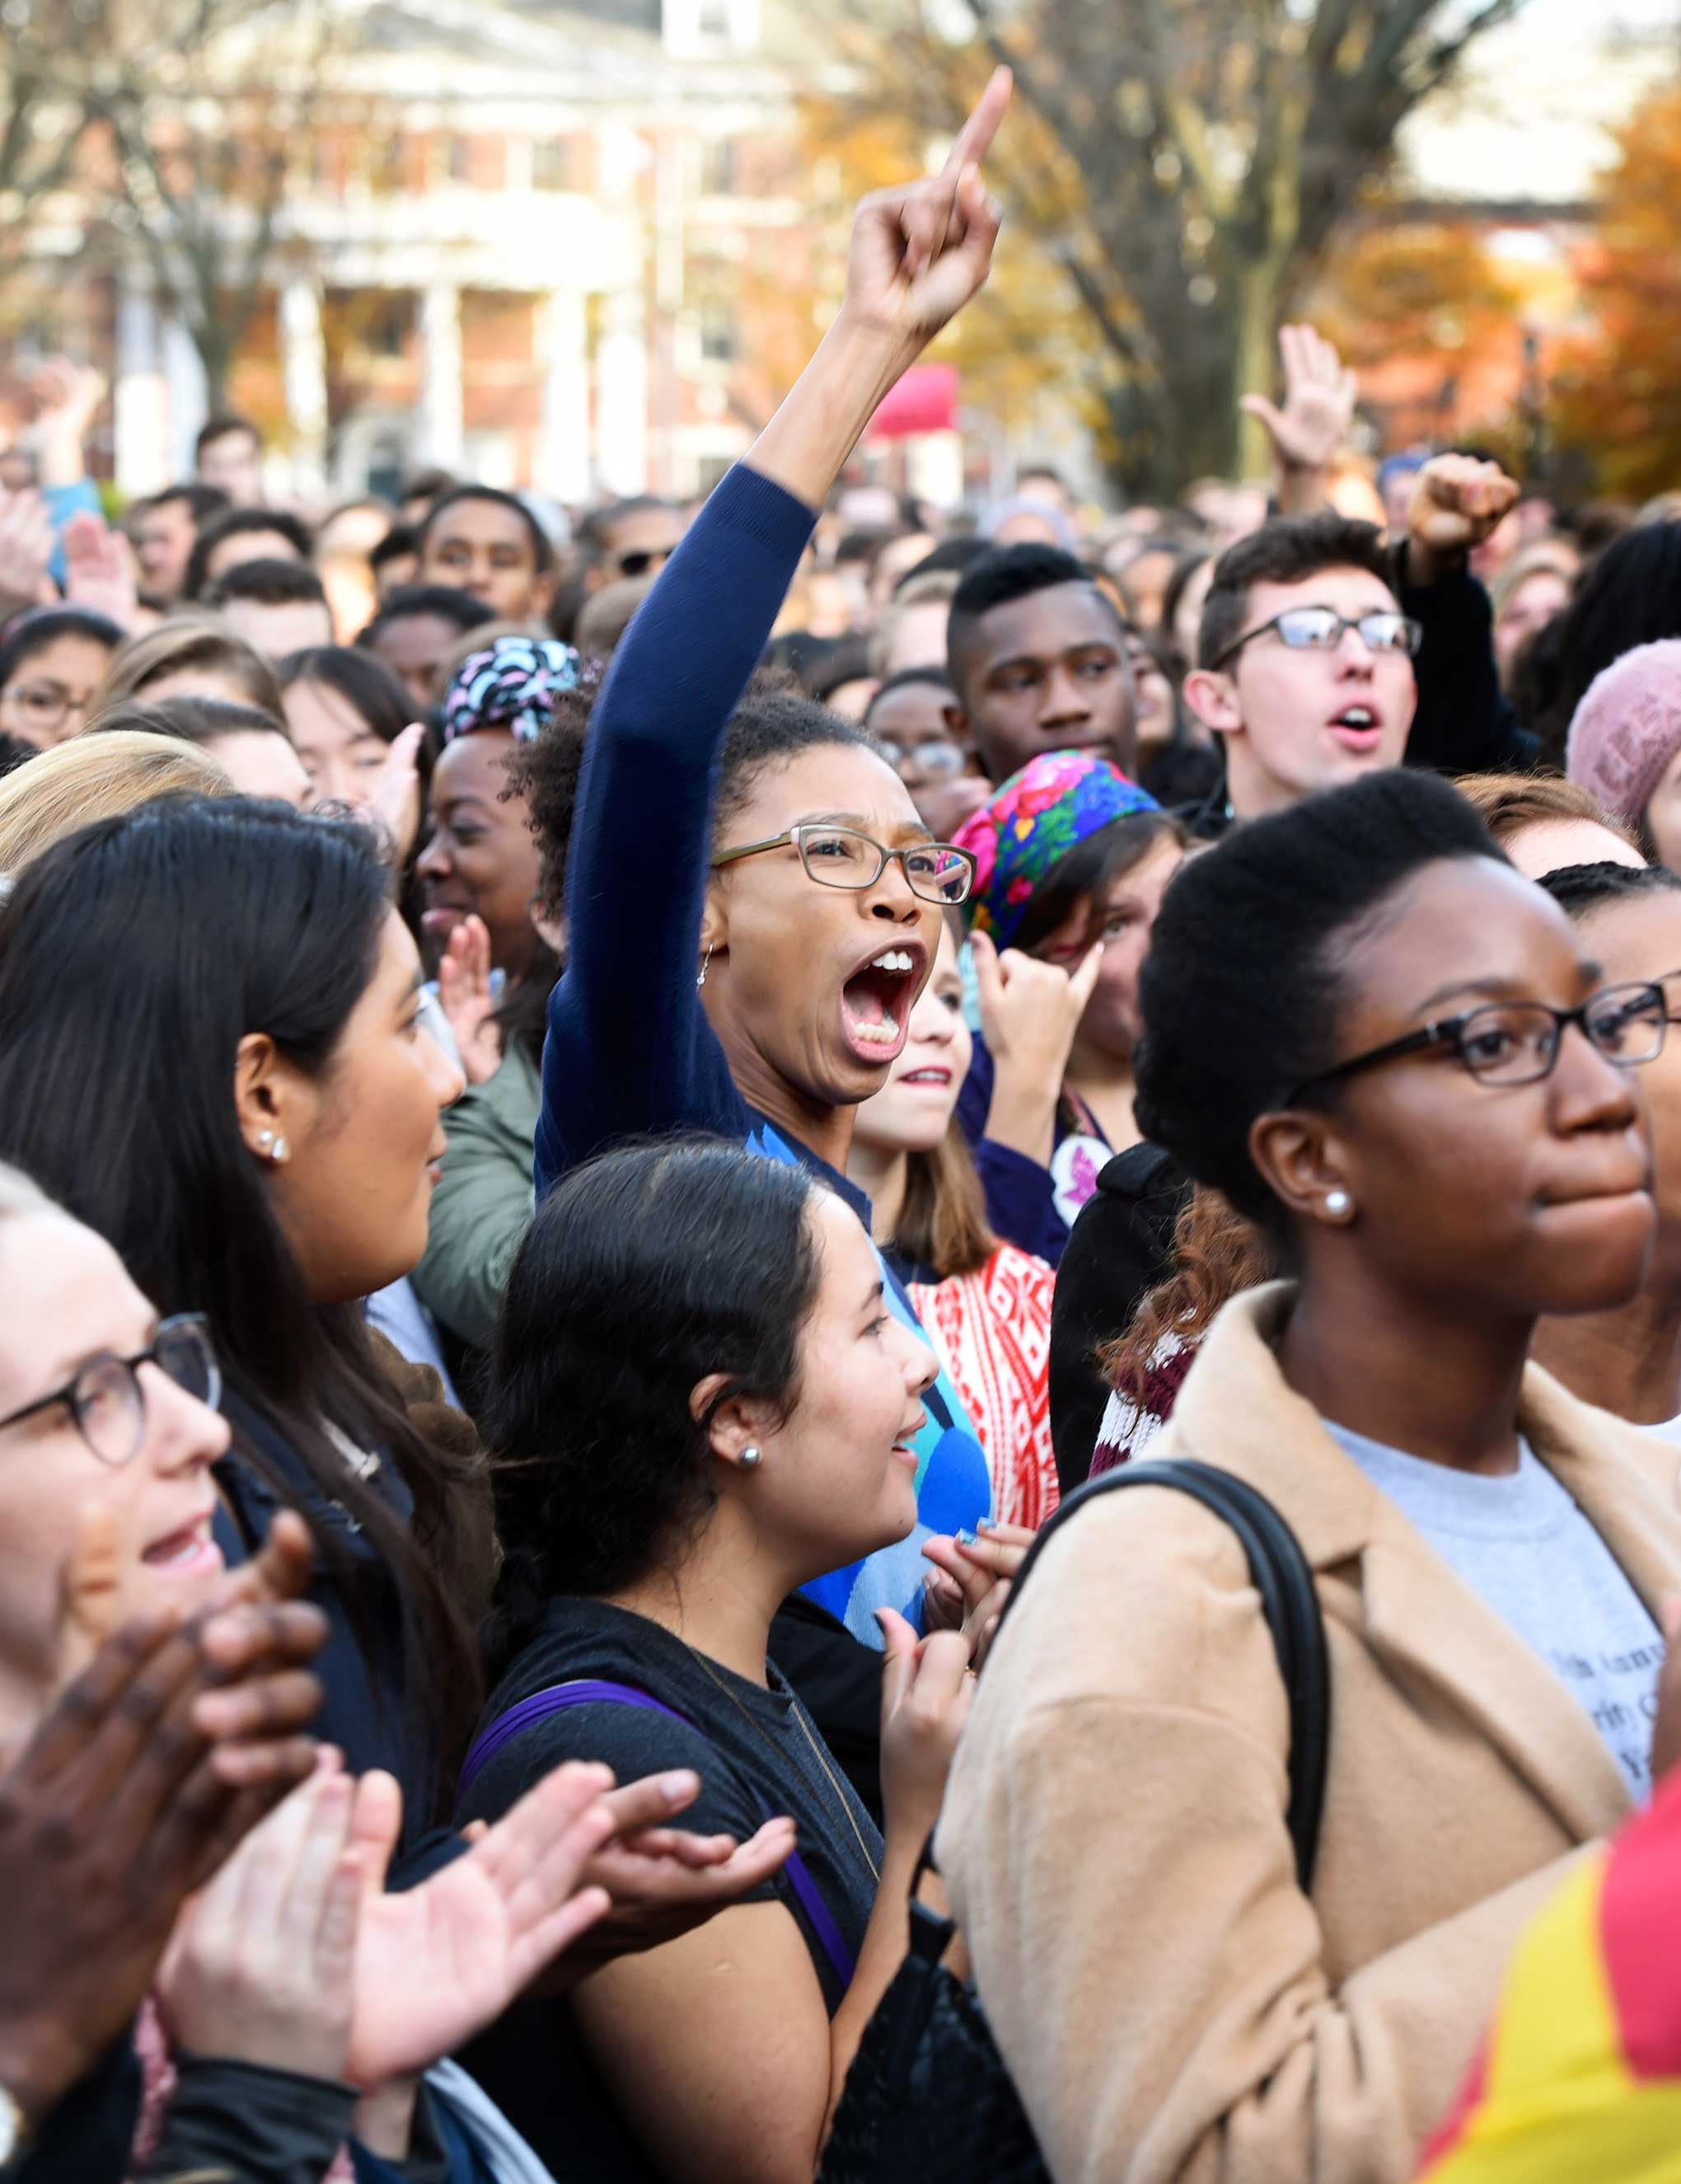 Yale students at a protest against racial insensitivity last November